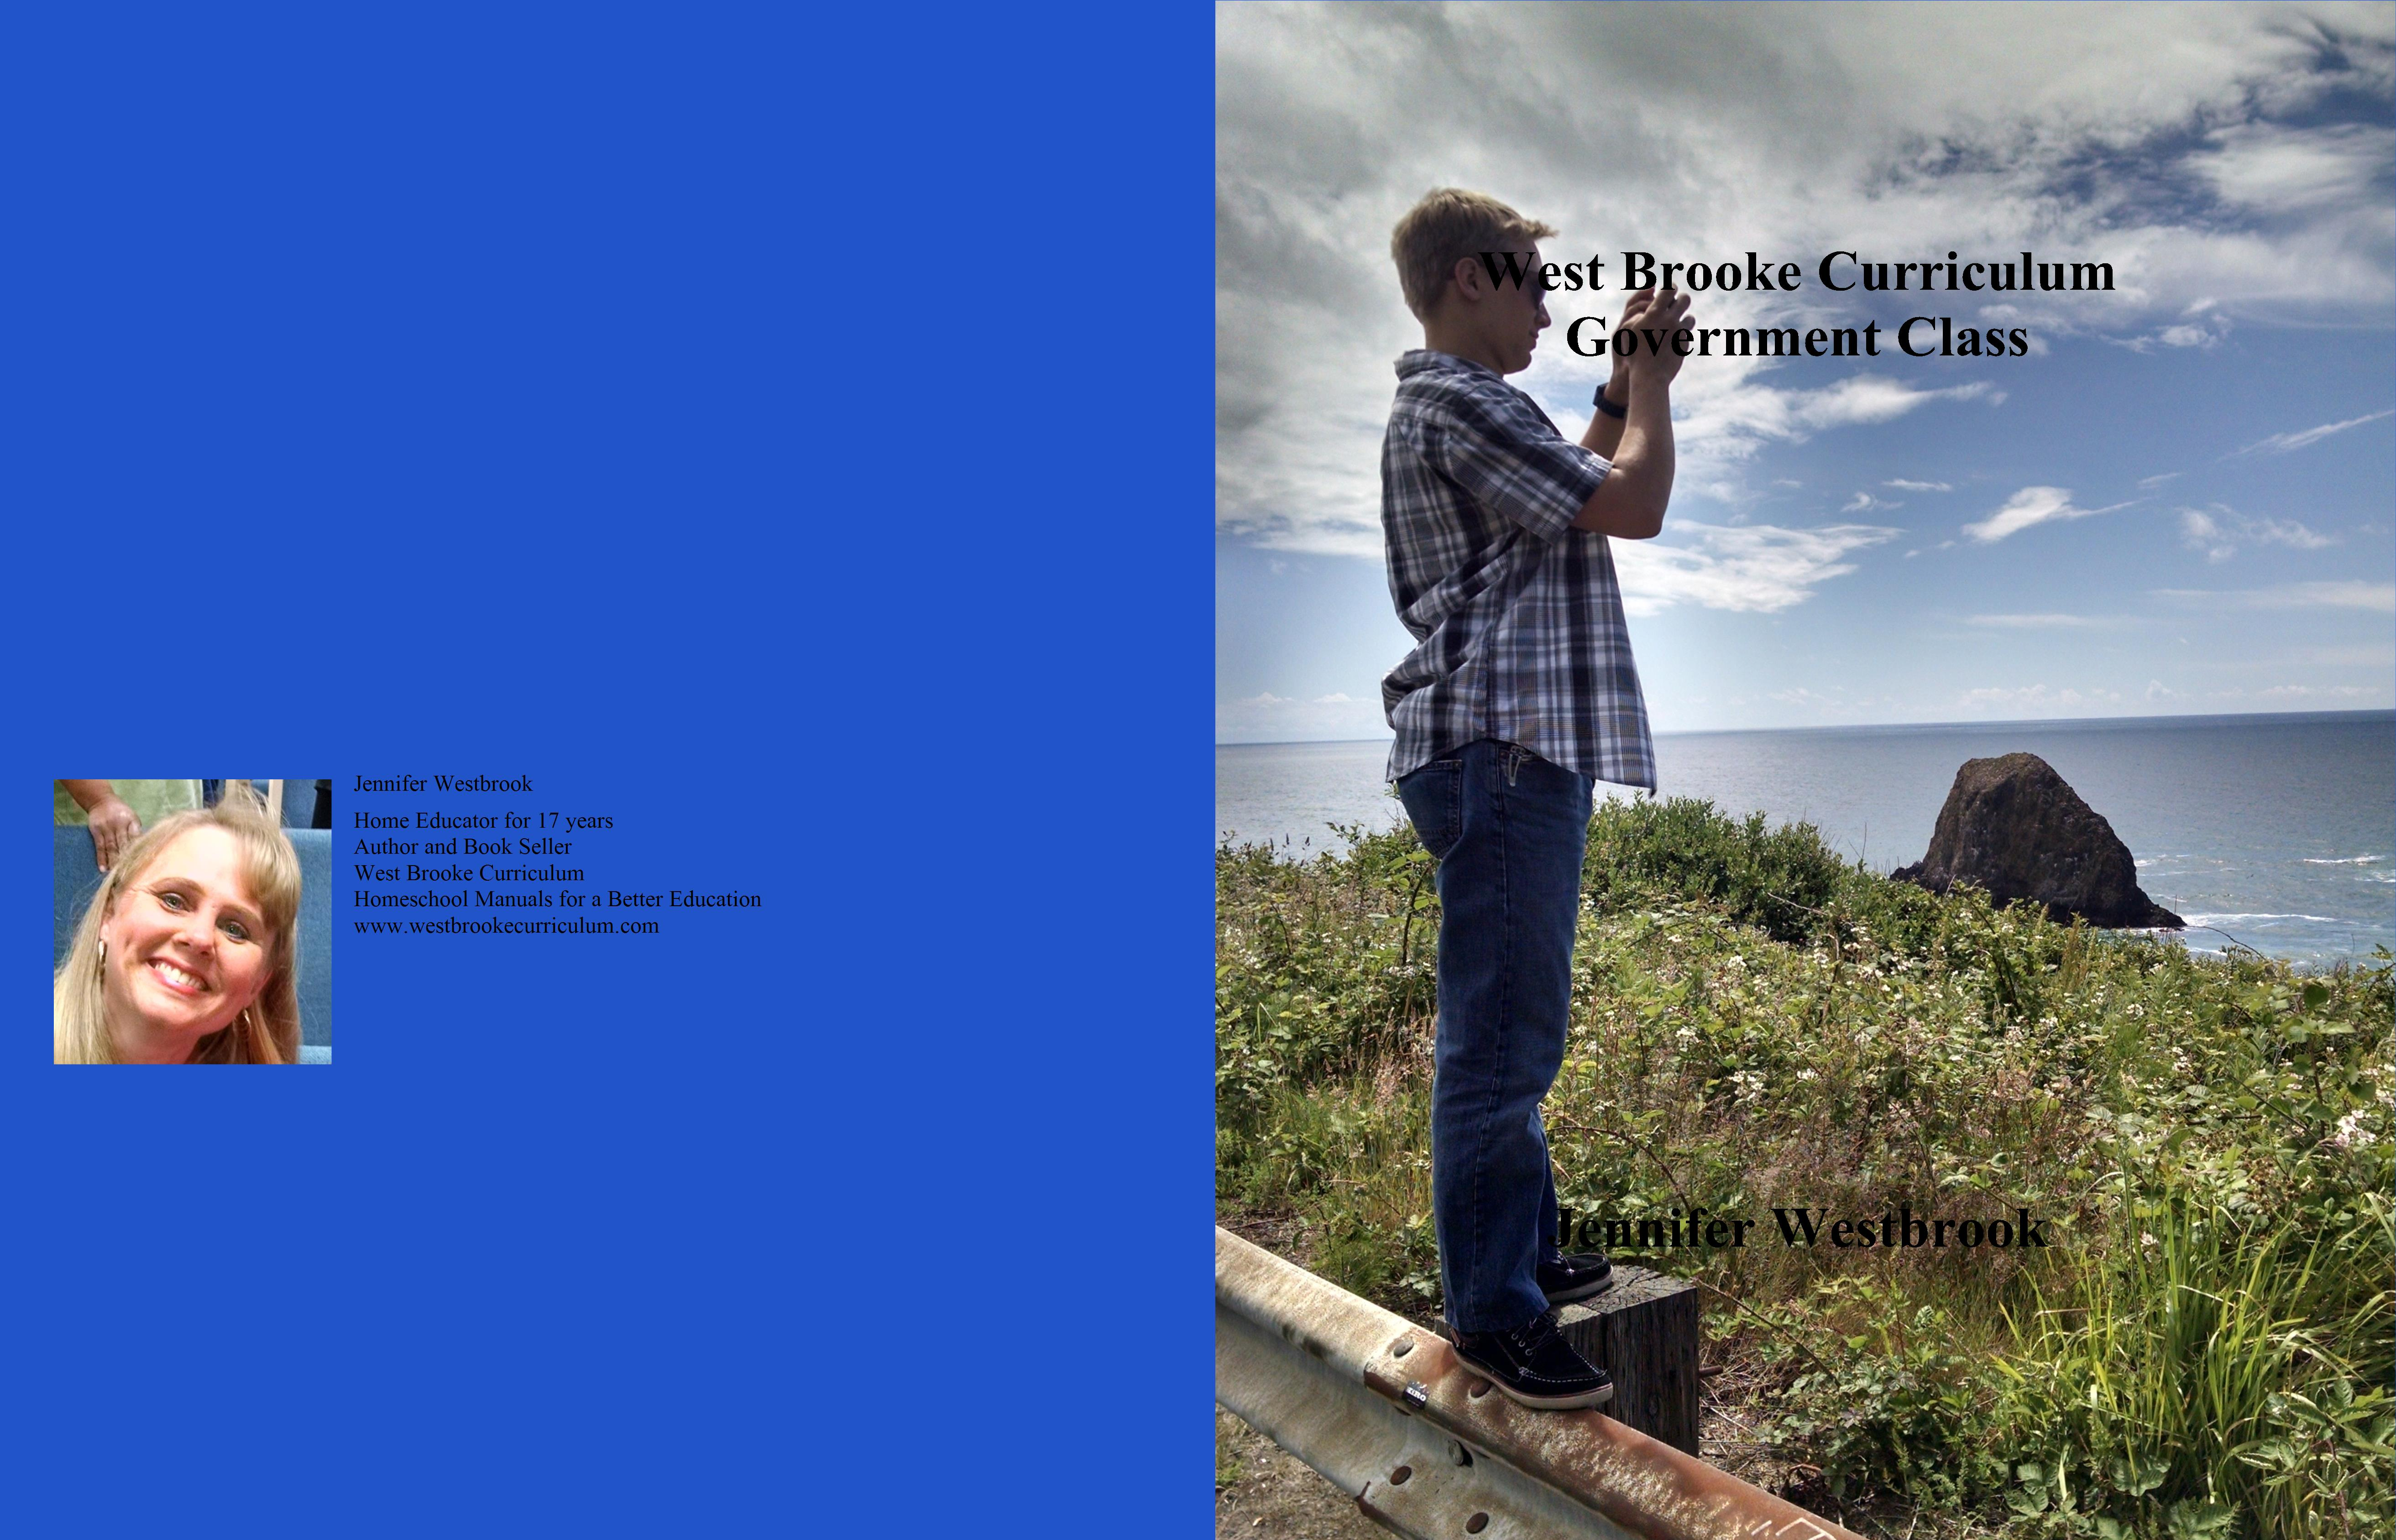 West Brooke Curriculum Government Class cover image